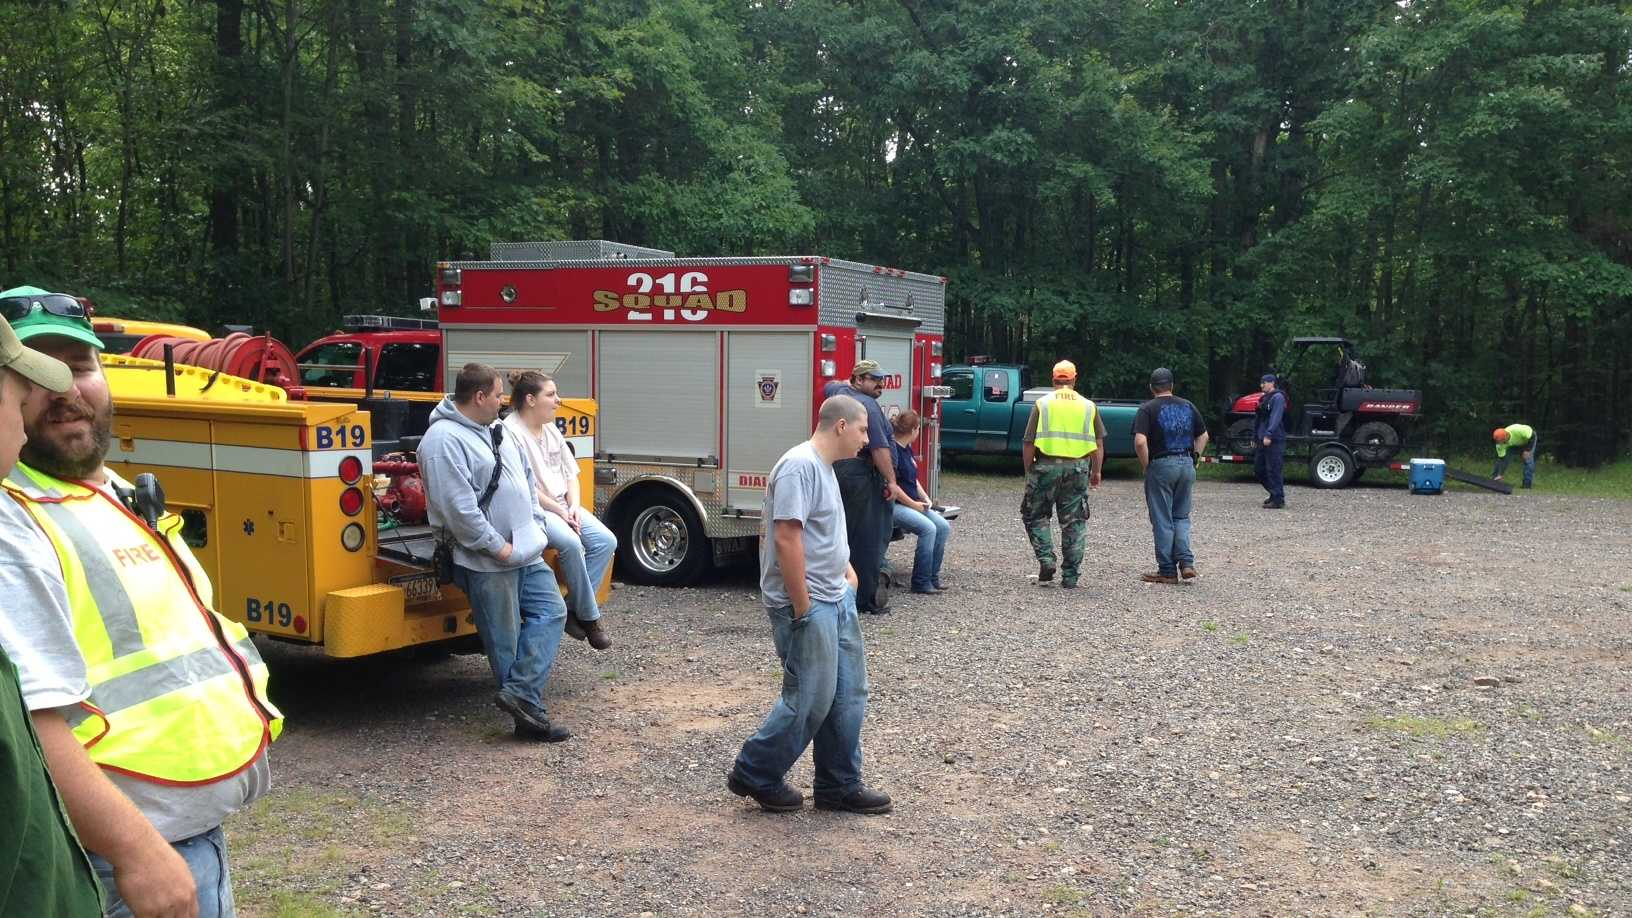 A search party found the missing hiker Monday morning.